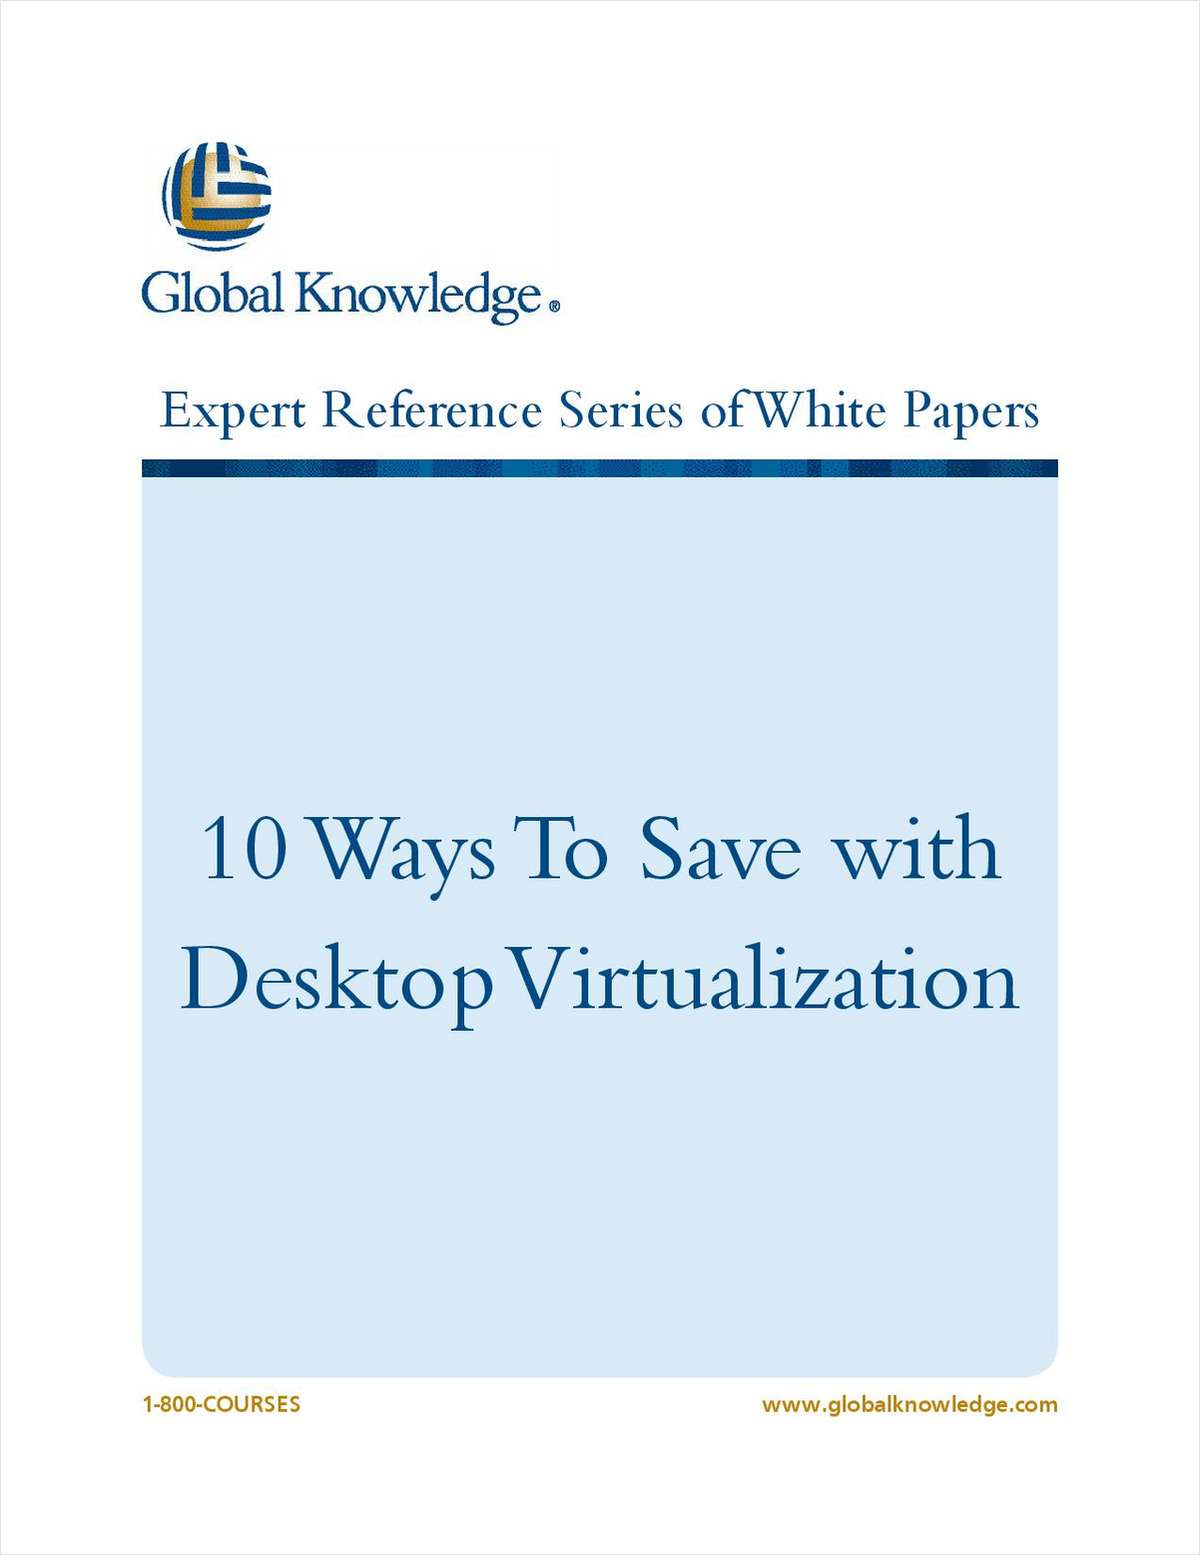 10 Ways to Save with Desktop Virtualization